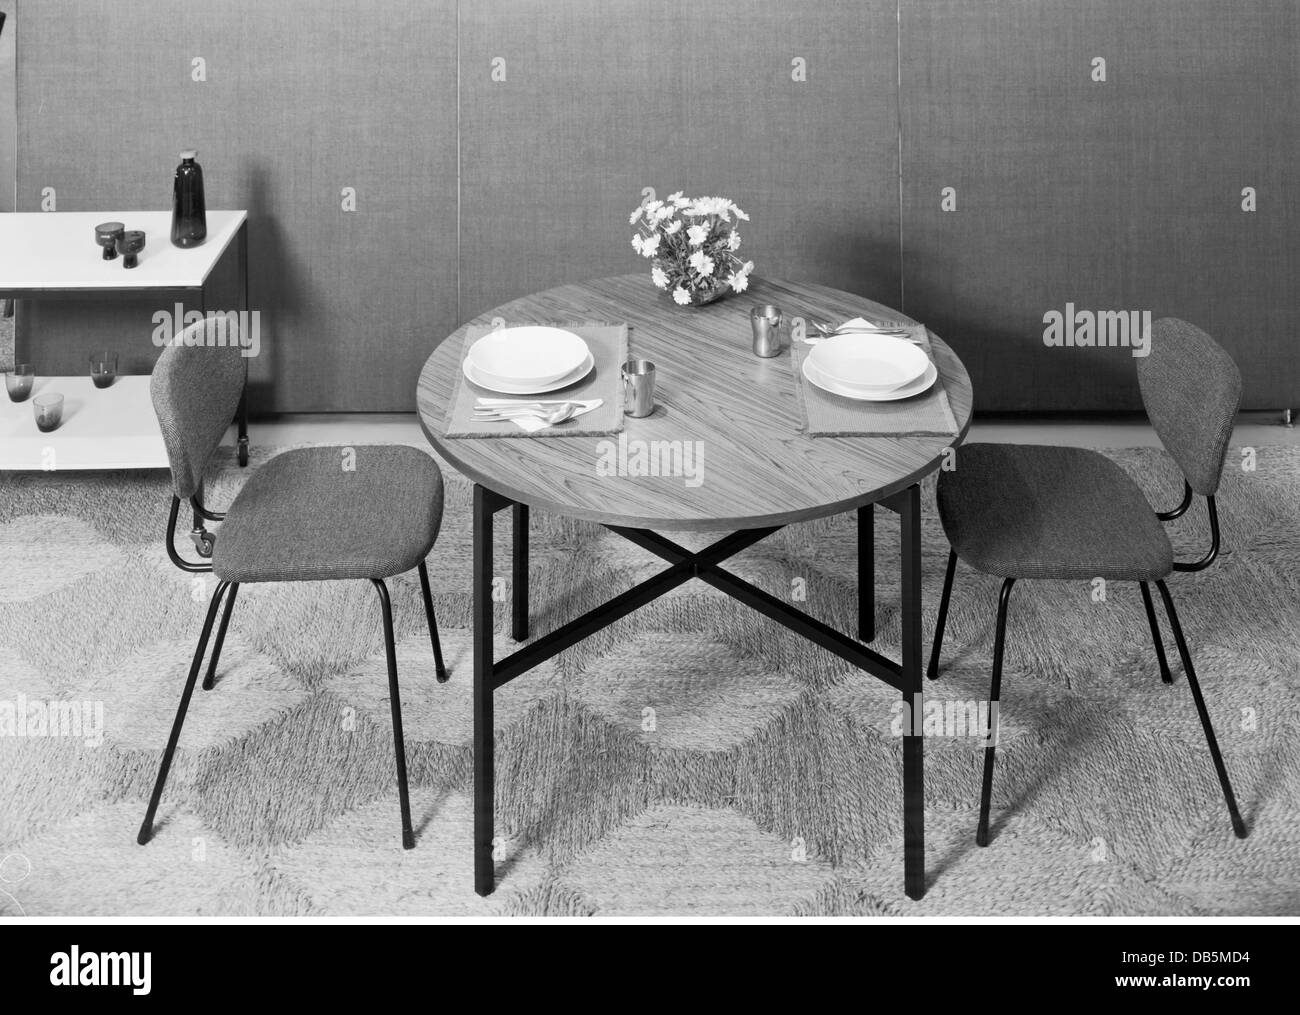 Stock Photo   Furniture, Dining Room, 1960, 1960s, 60s, 20th Century,  Historic, Historical, Chair, Chairs, Breakfast Table, Dining Table, Din